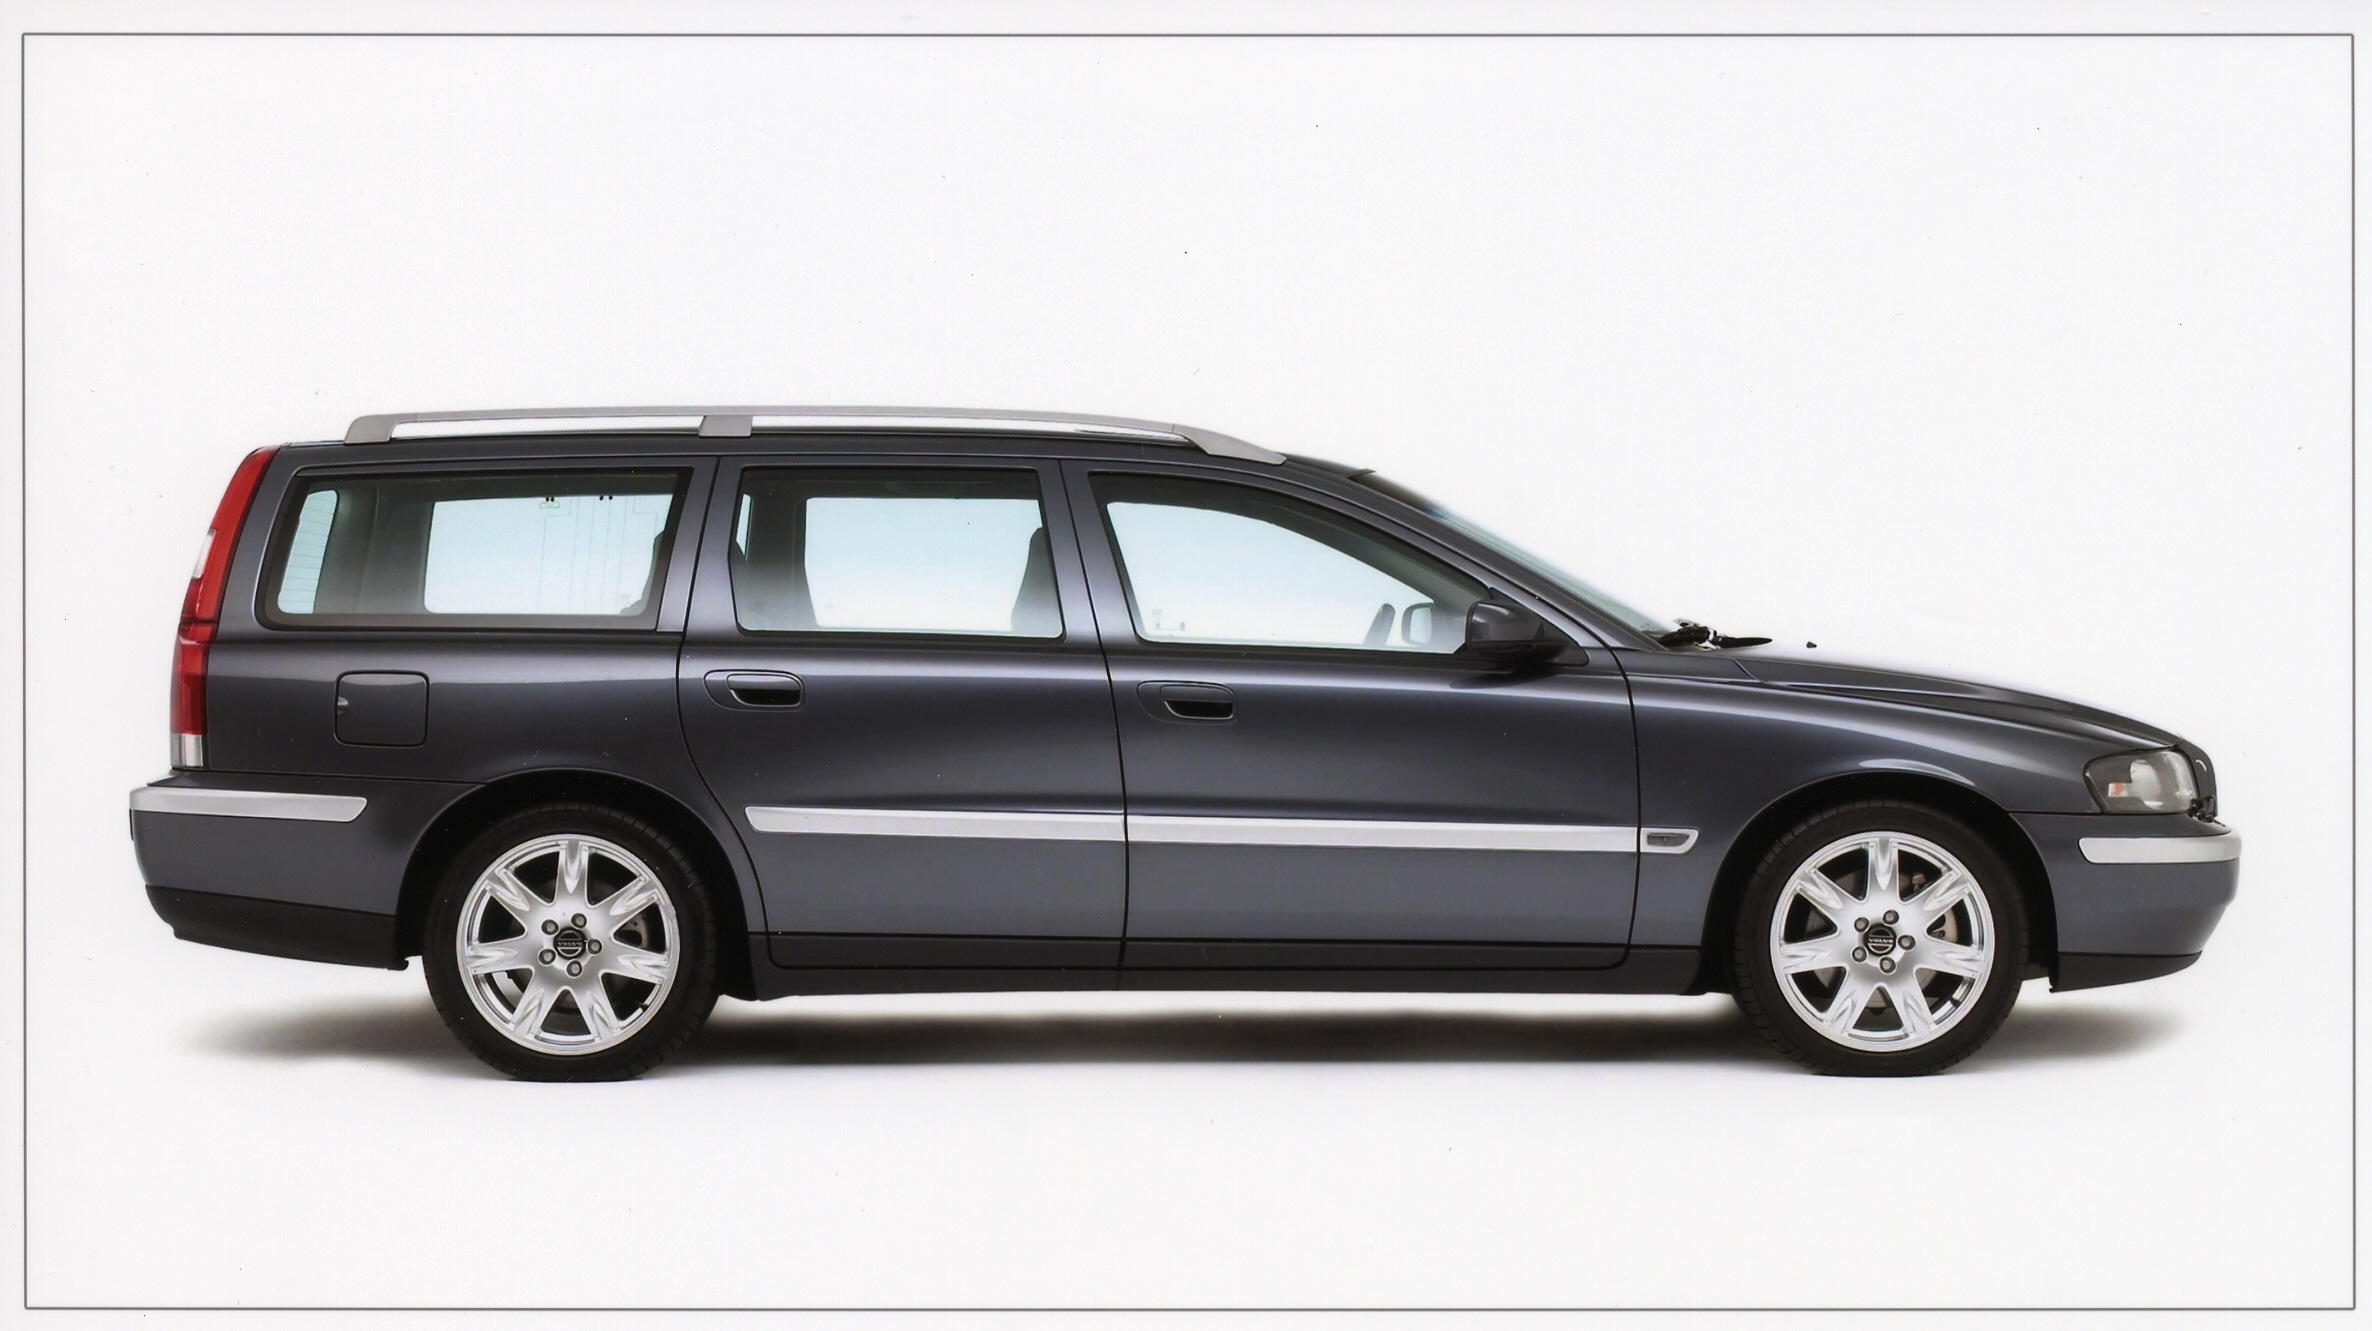 Volvo V70, Volvo, V70, cars, swededn, motoring, automotive, estate car, estate, car sales, retro car, classic car, motoring, jake belder,